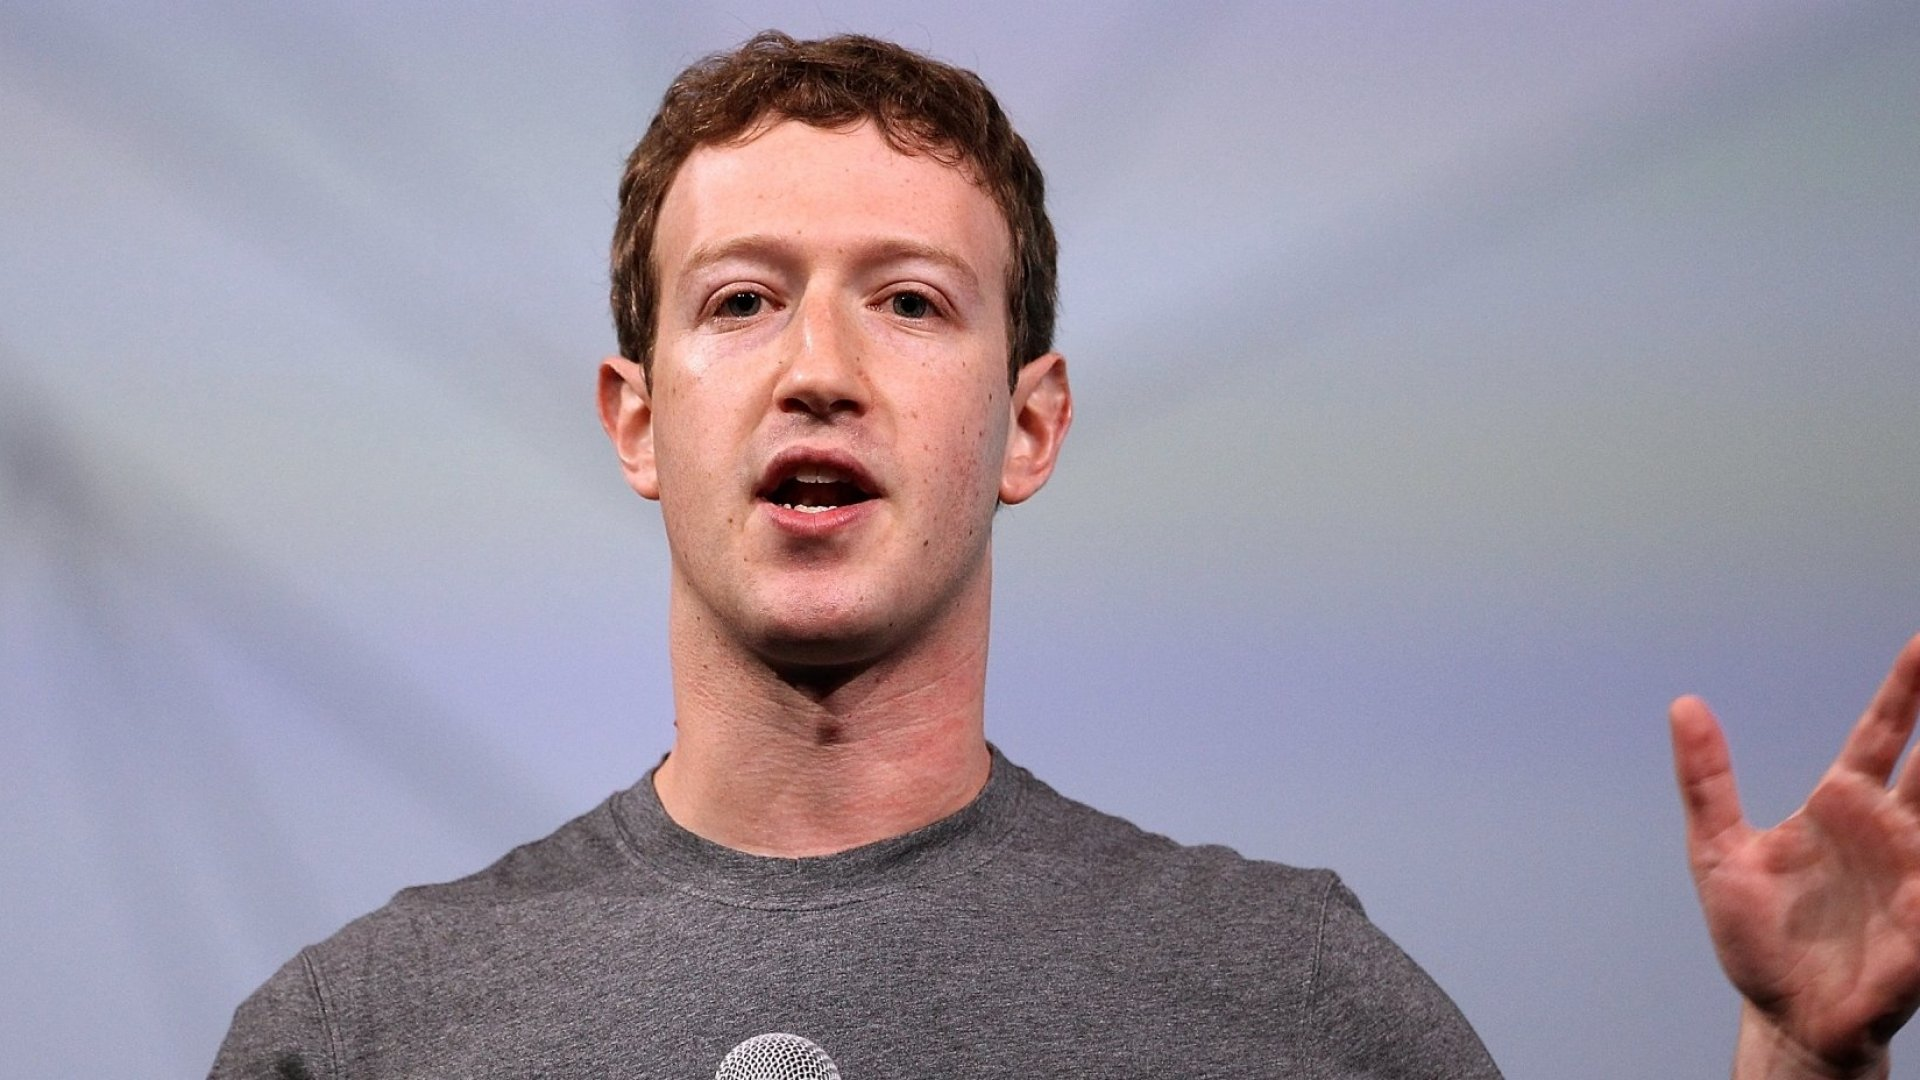 Mark Zuckerberg's U.S. Tour Has Begun. Here's What to Expect When He Comes to Your Hometown